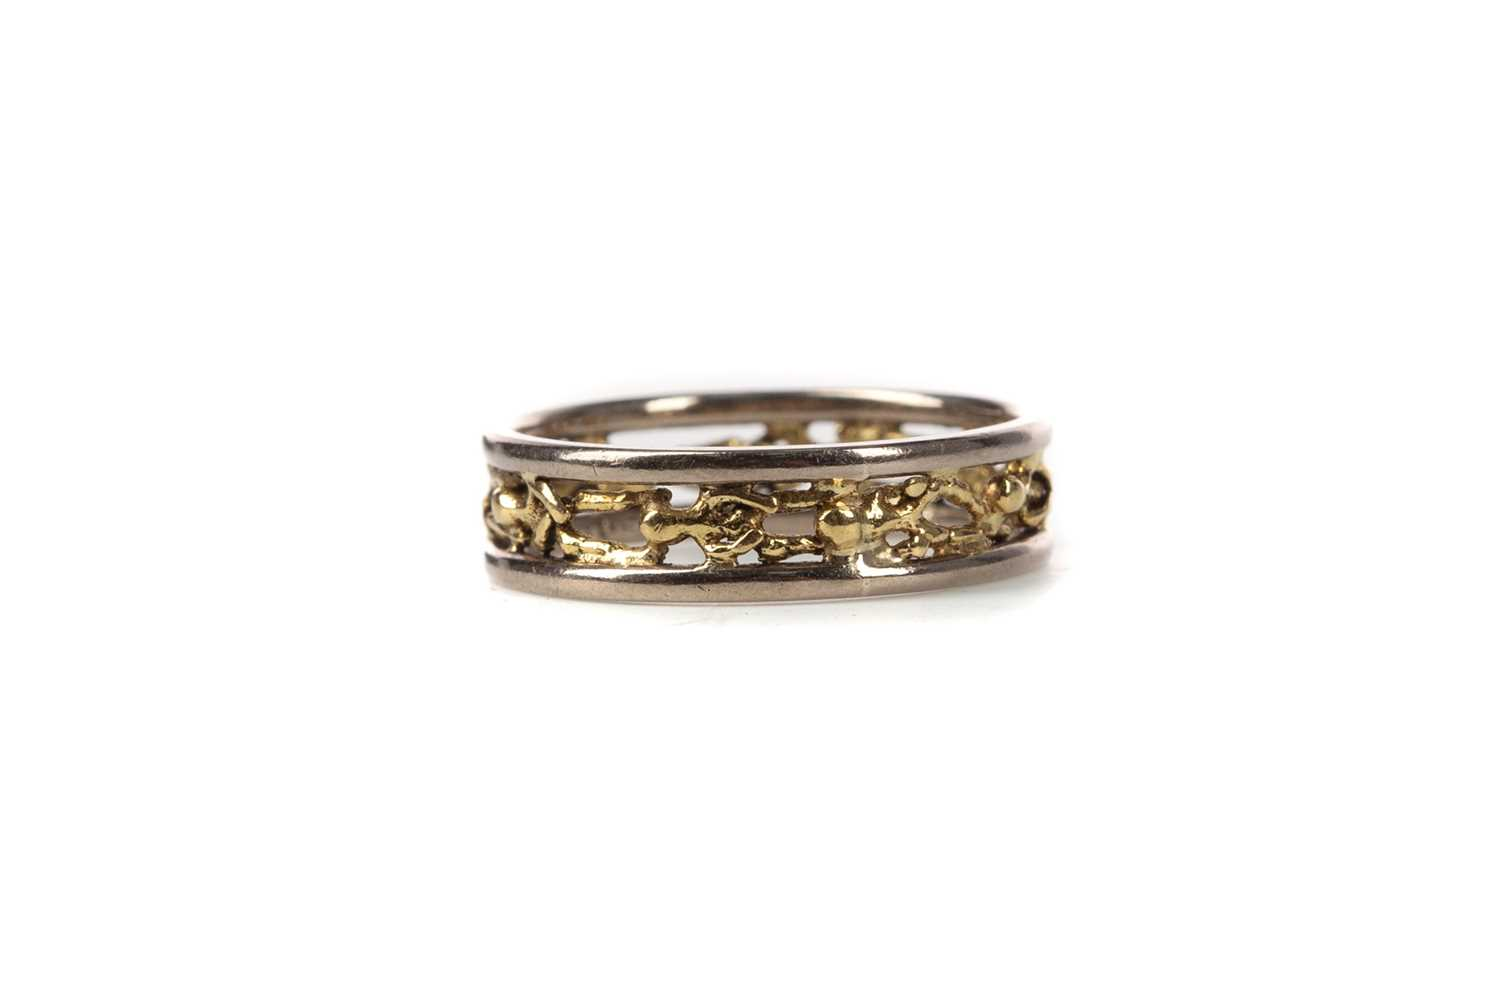 Lot 462 - A STUART DEVLIN 18 CARAT YELLOW AND WHITE GOLD 'PEOPLE' RING